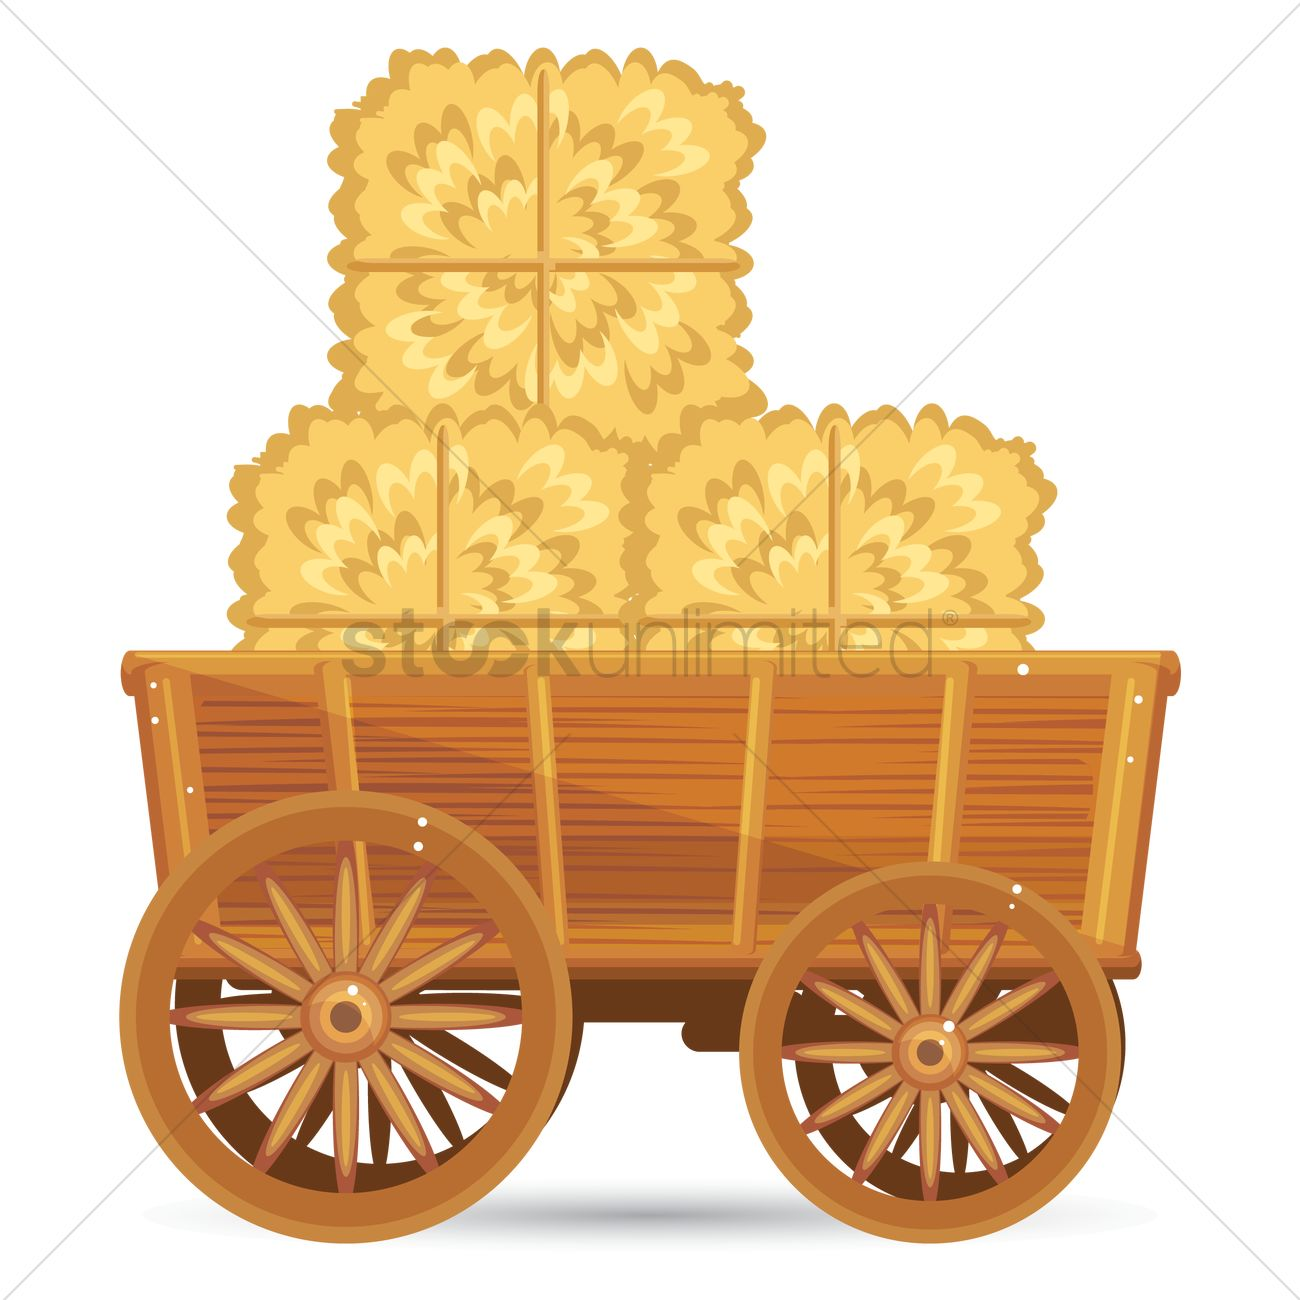 Wooden cart with straw bales Vector Image.